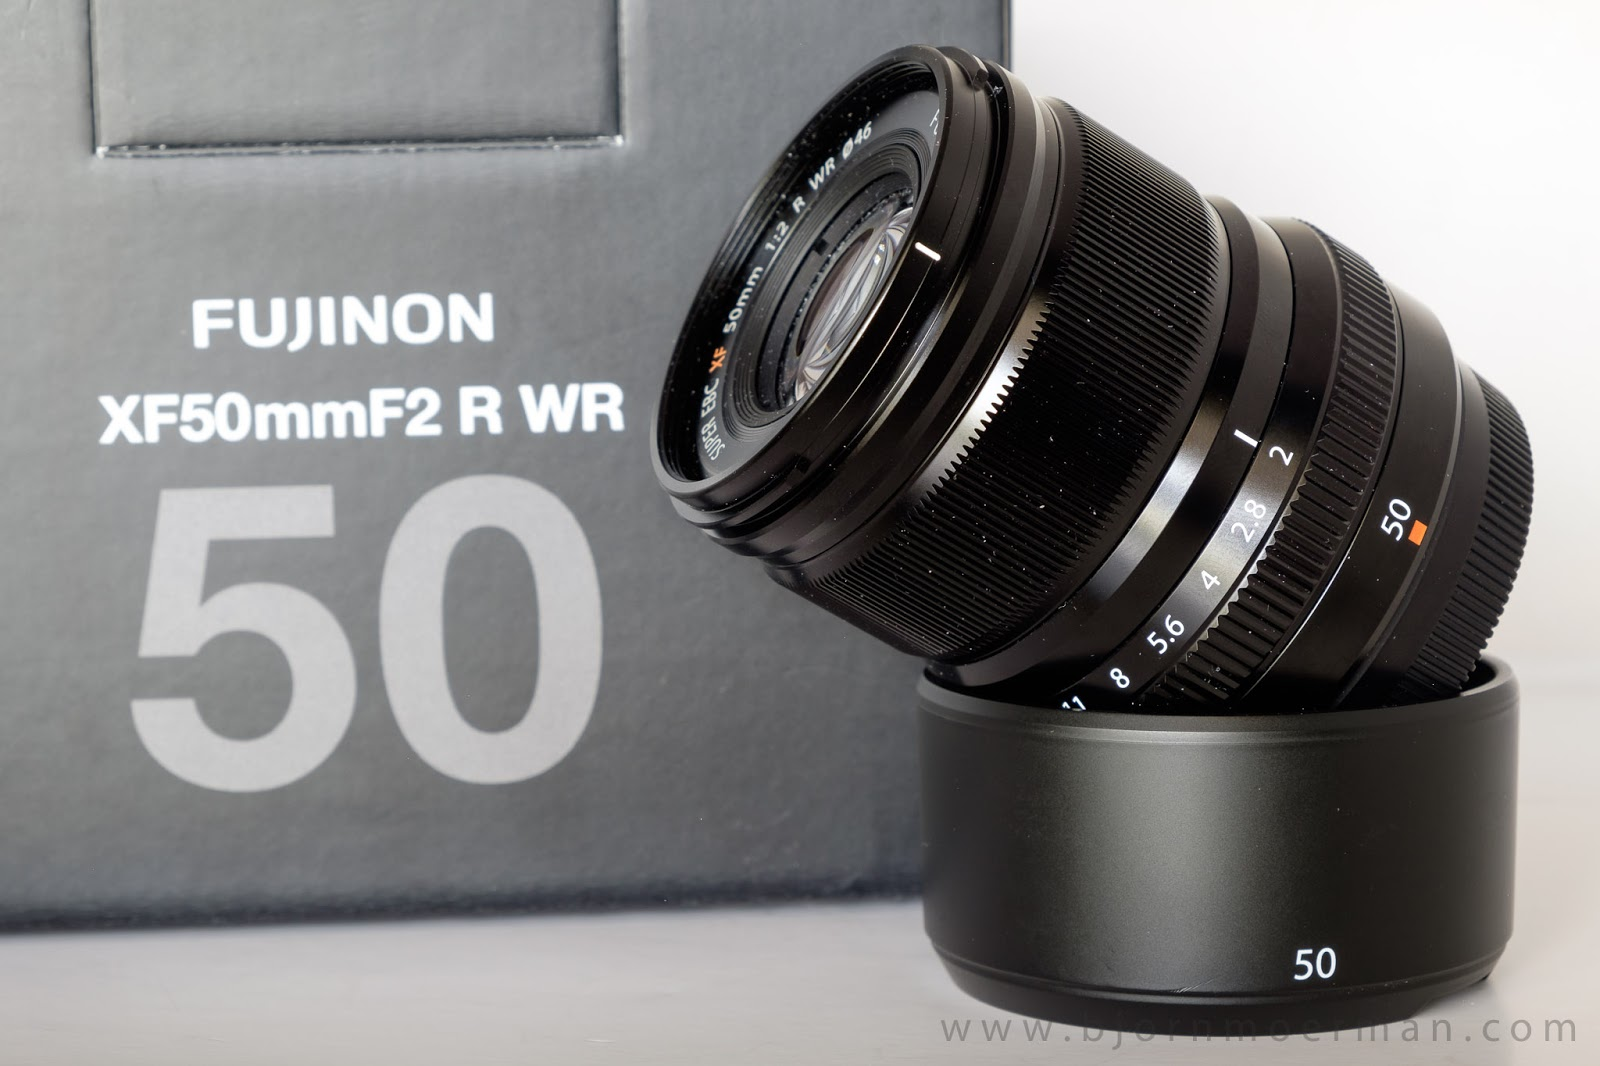 Bjrn Moerman Photography First Look Fujifilm Xf50mm F2 R Wr Xf 23mm When Announced Three New Cameras On January 19 X T20 100f And Gfx 50s They Also Released A Lens The An Announcement That